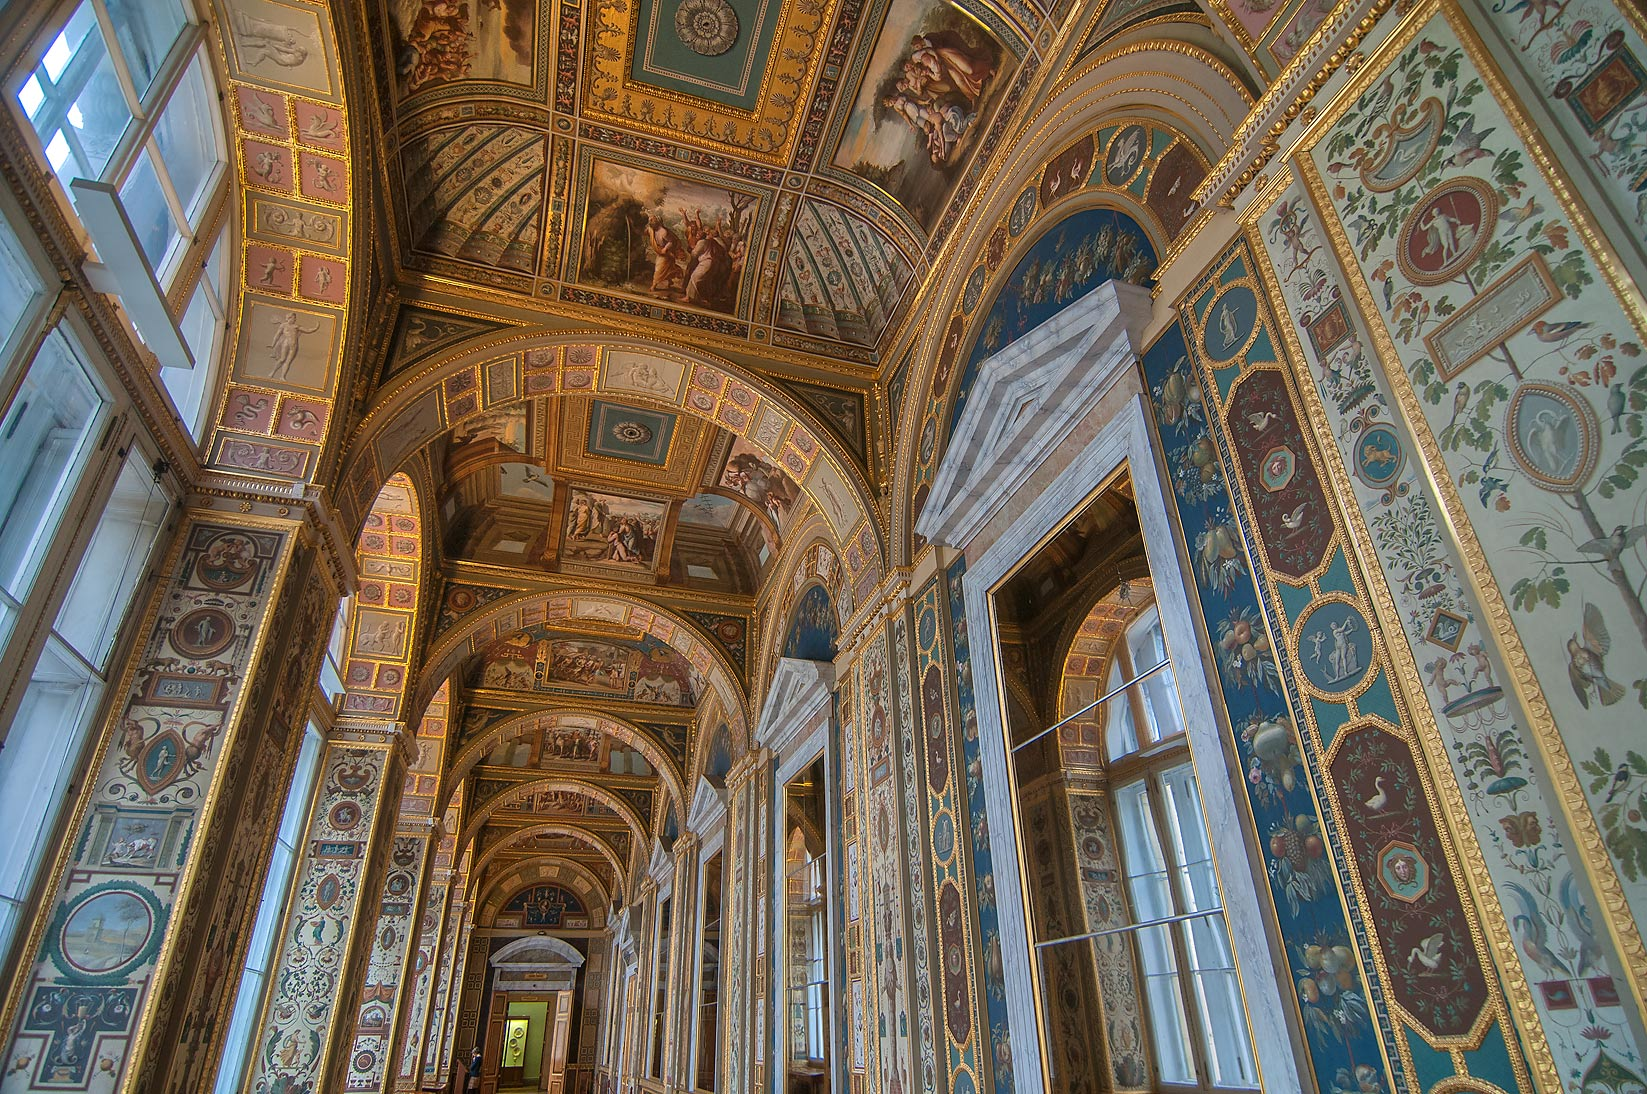 Vaults of Raphael Loggias (a copy) in Hermitage Museum. St.Petersburg, Russia